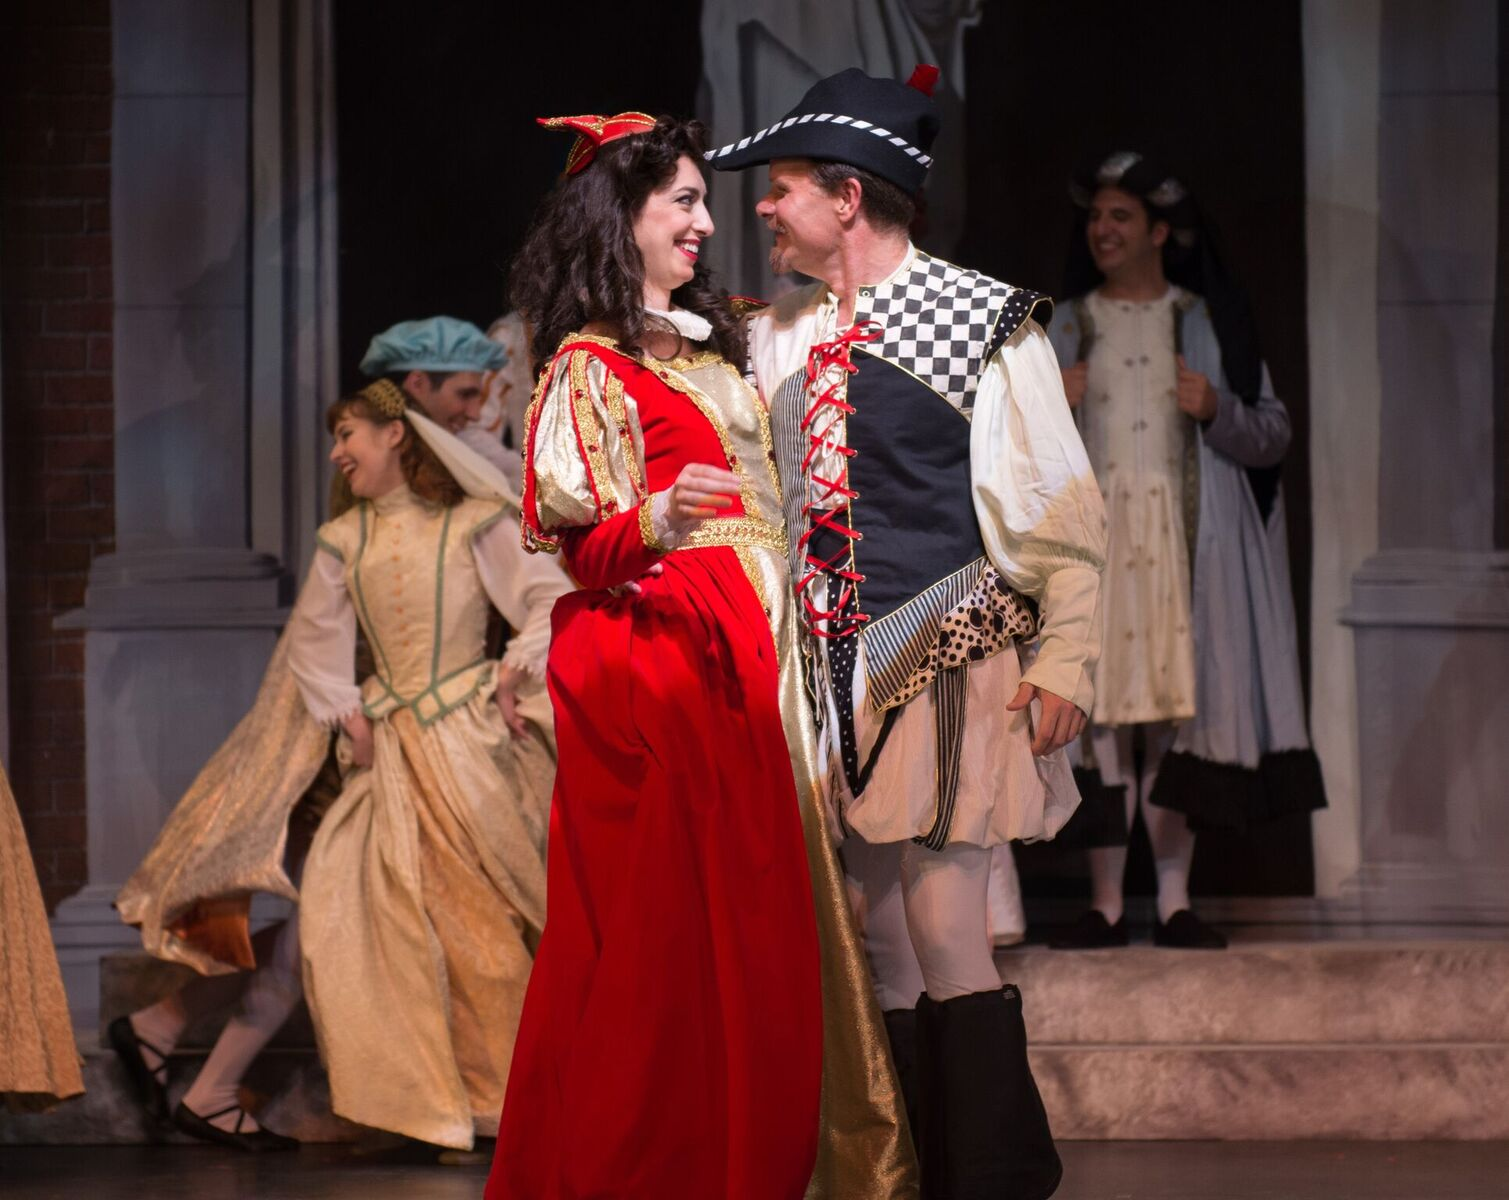 """Kiss Me, Kate"" with Ted Christopher as Petruchio and Sarah Best as Kate. (Photo: Matt Dilyard)"